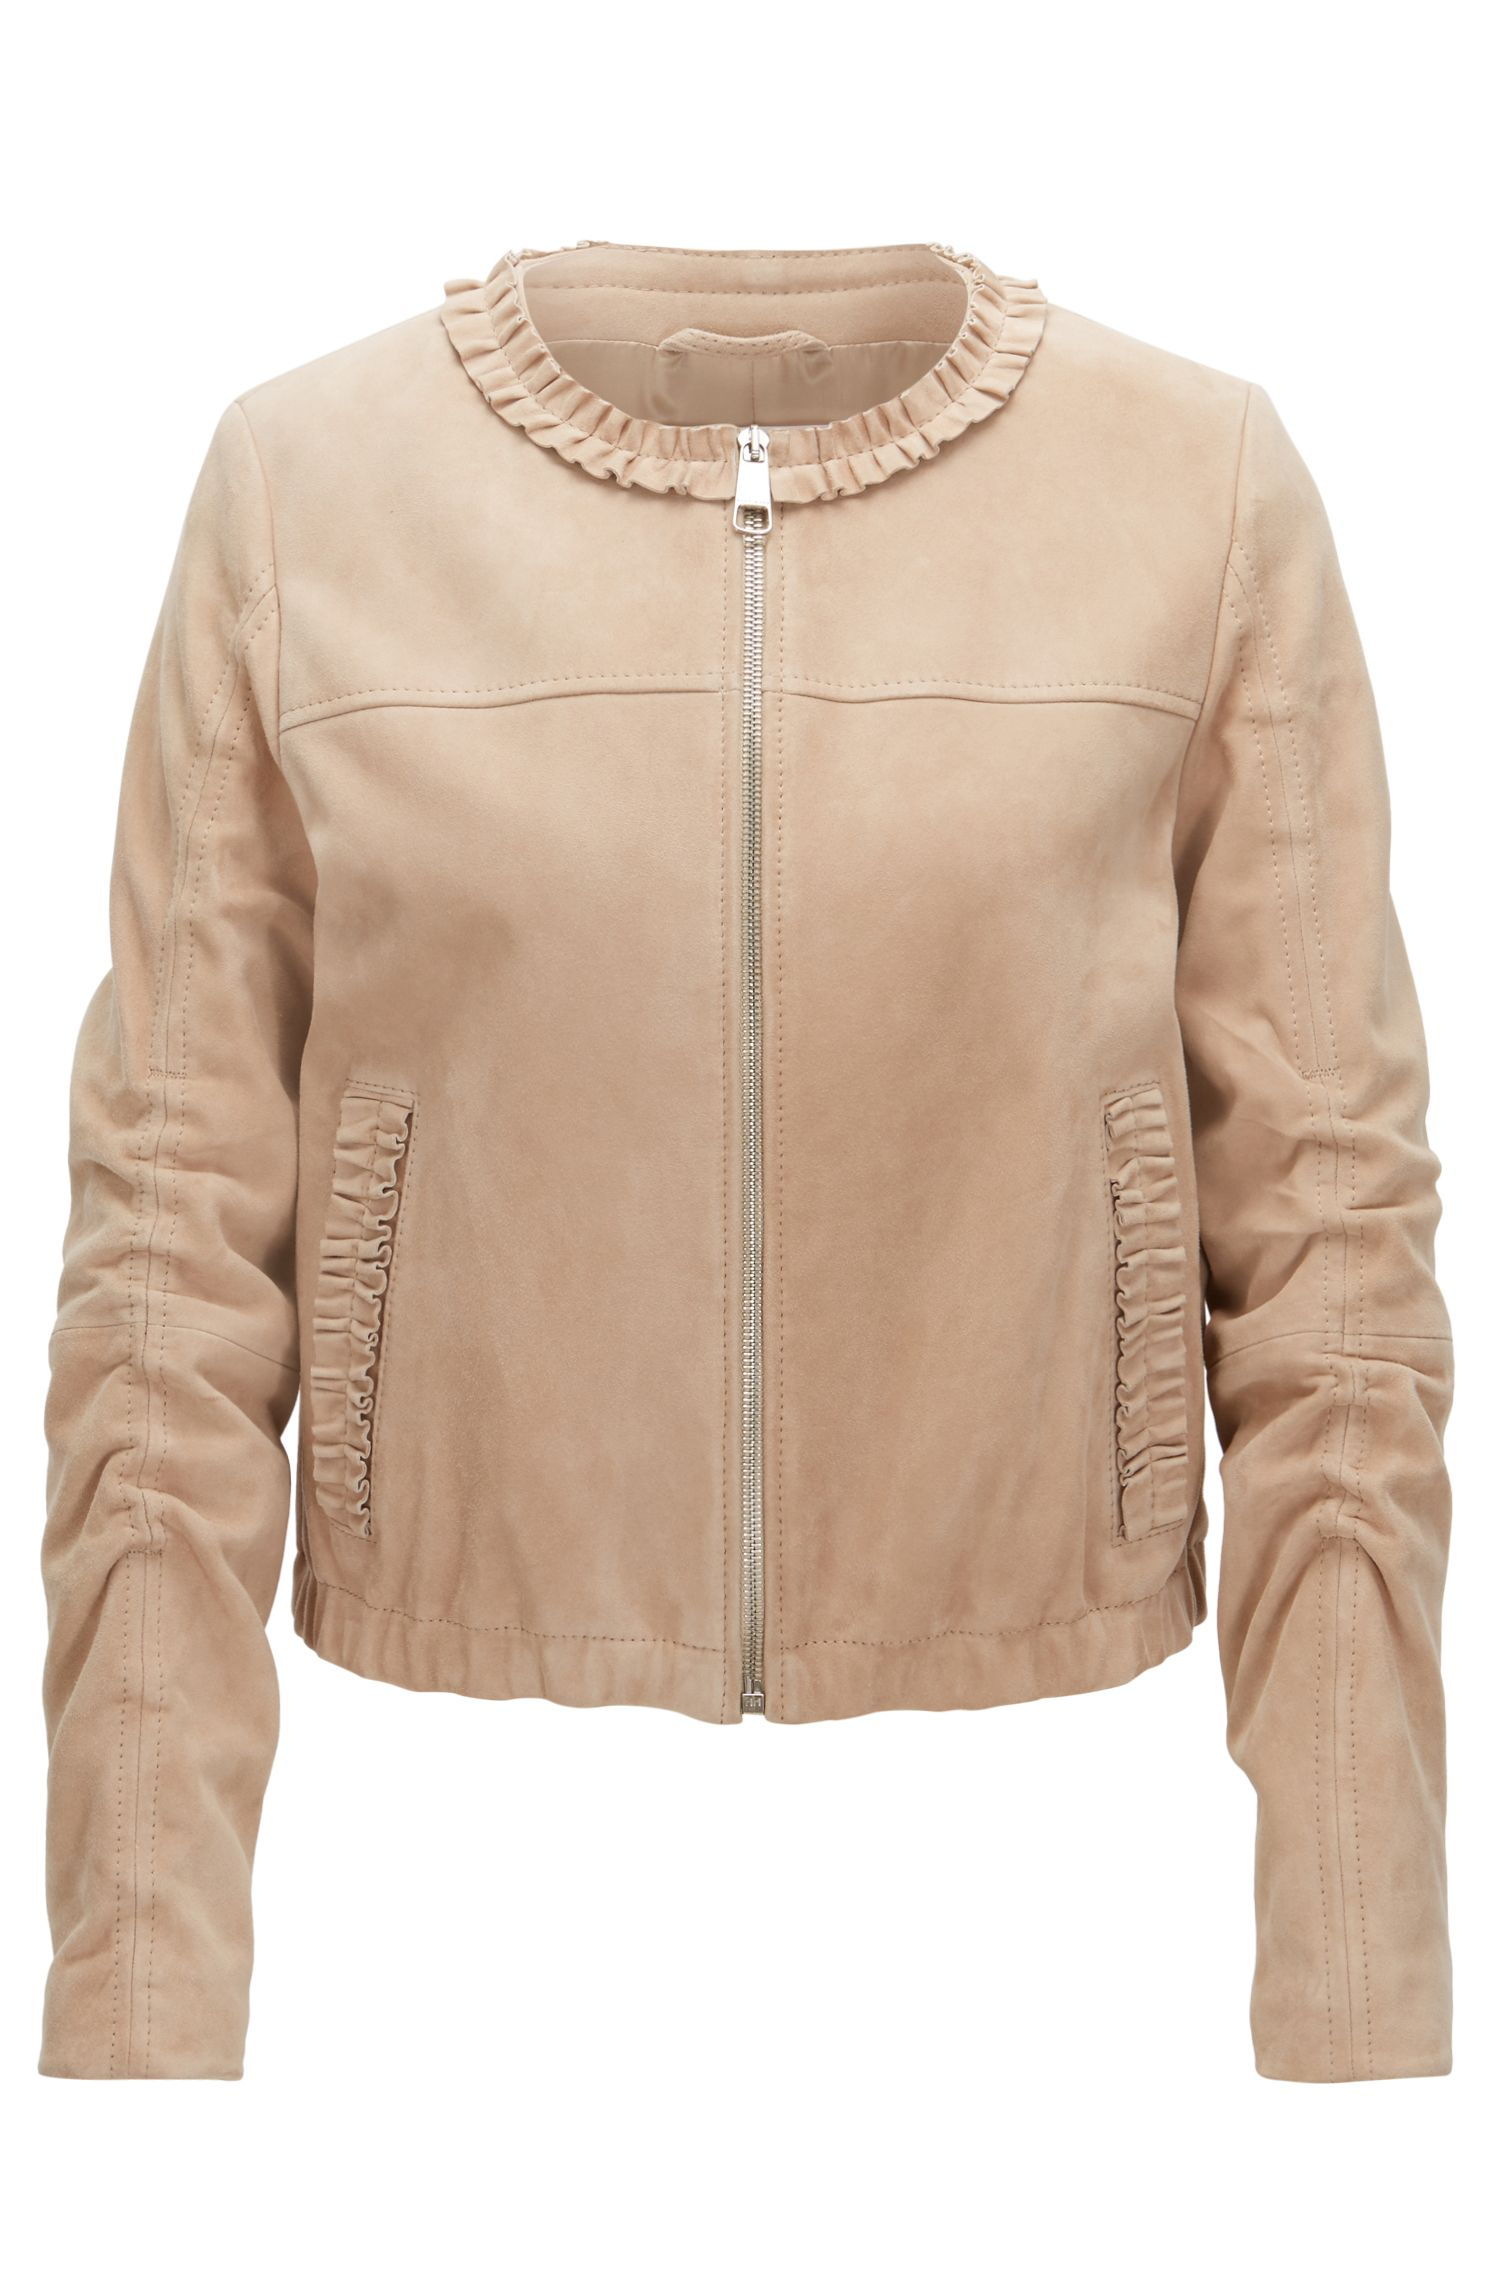 Collarless jacket in soft suede leather